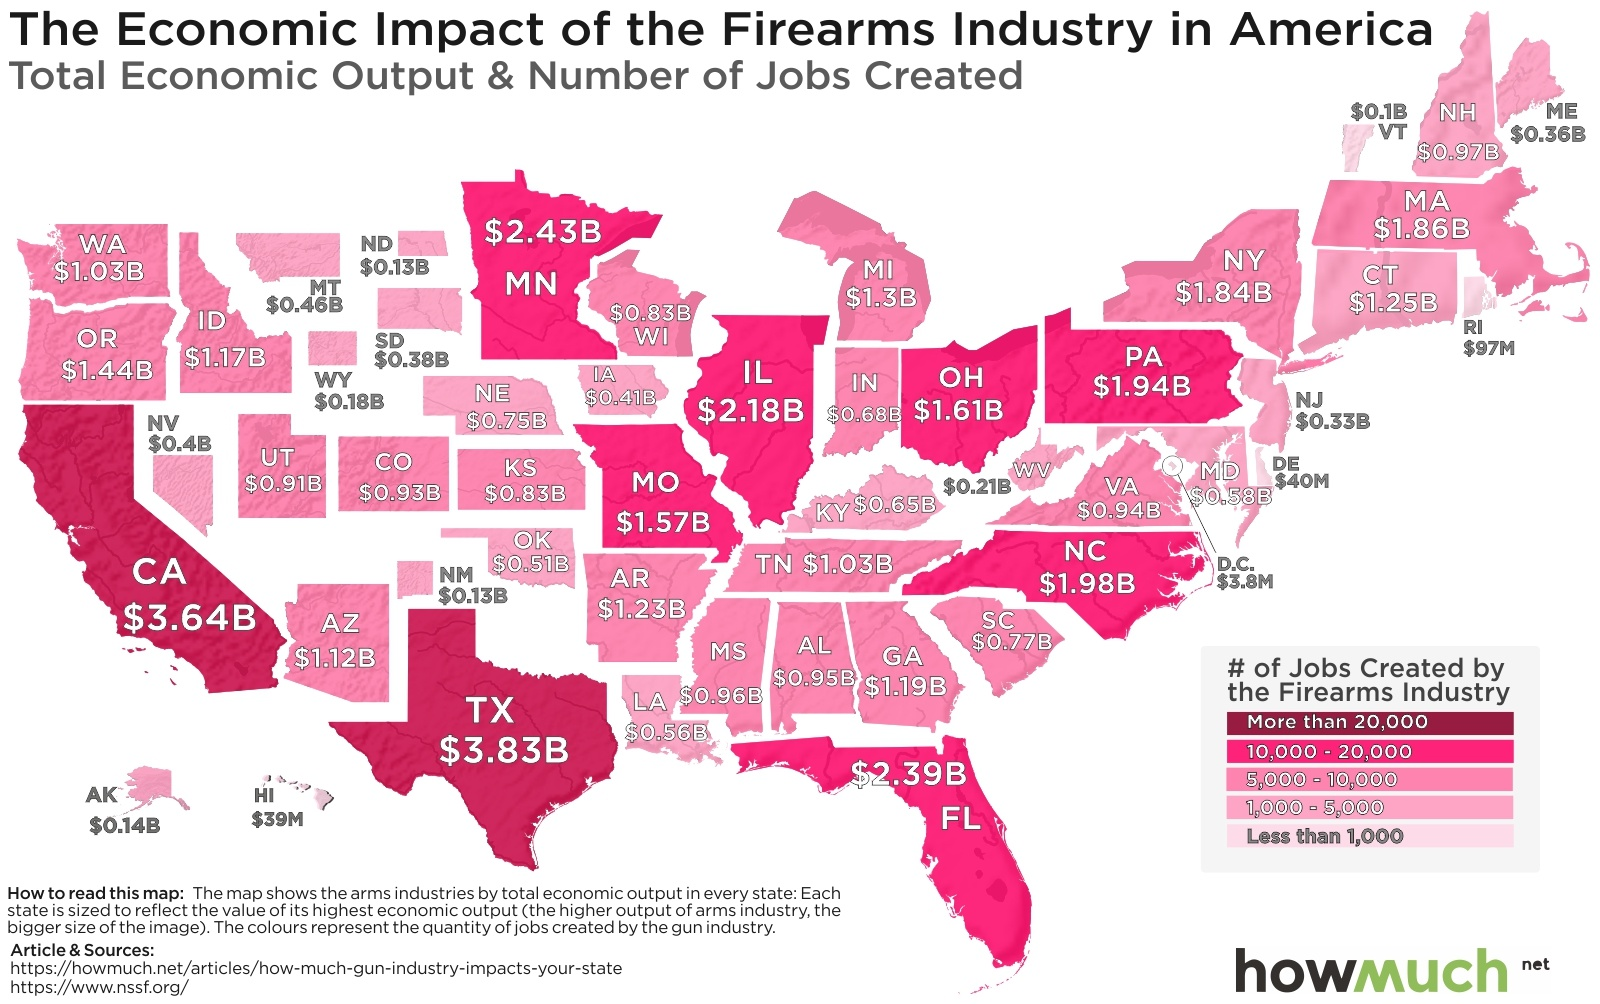 The Gun Industry By State: Some Surprising Stats - ValueWalk